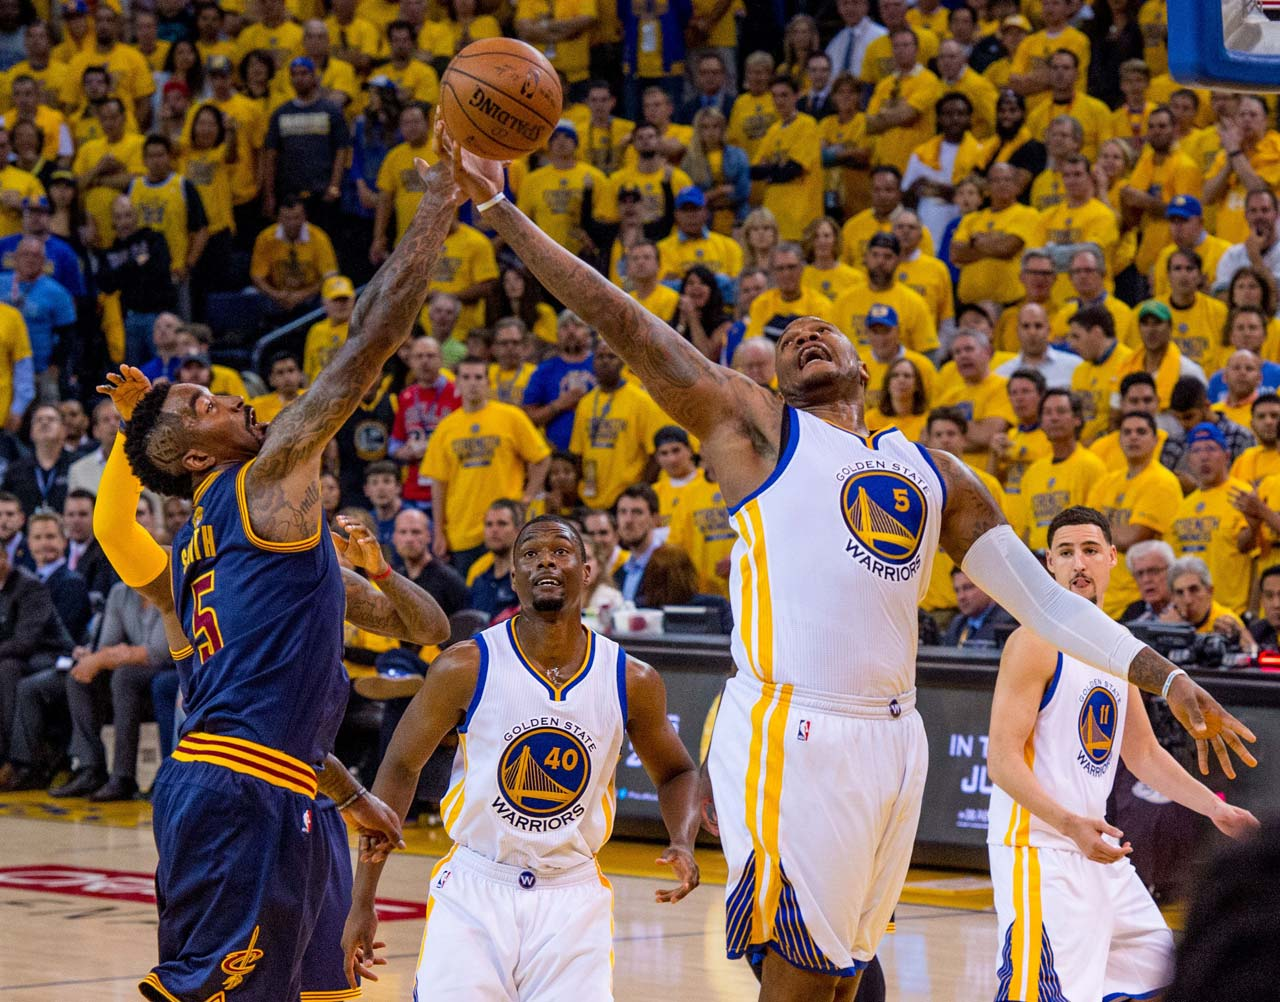 Marreese Speights of Golden State keeps the ball away from J.R. Smith. Speights scored eight points in nine minutes and had two rebounds.